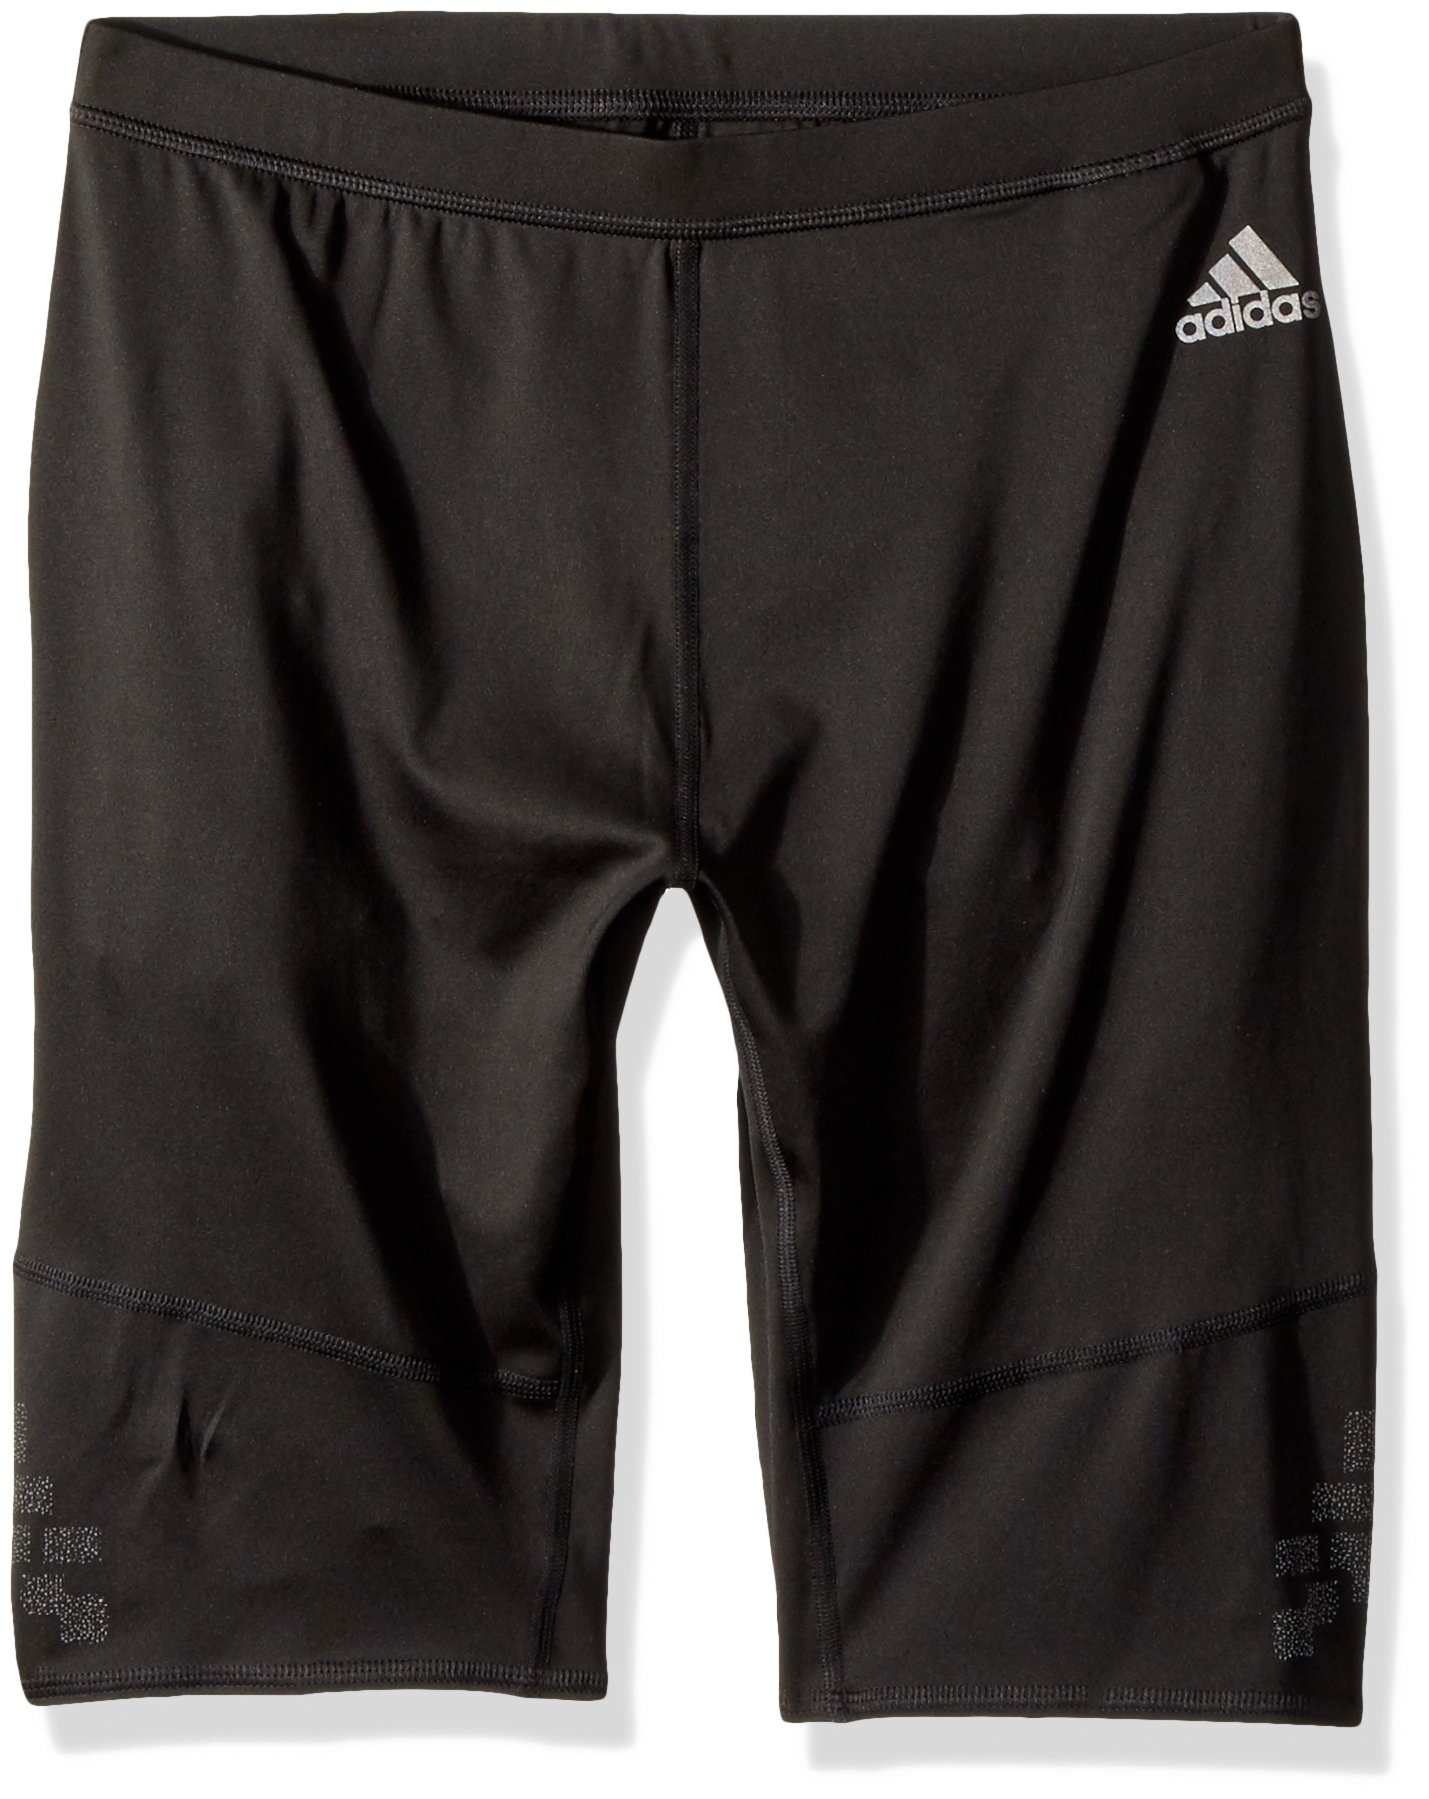 adidas Men's Running Supernova Short Tights, Black, Small